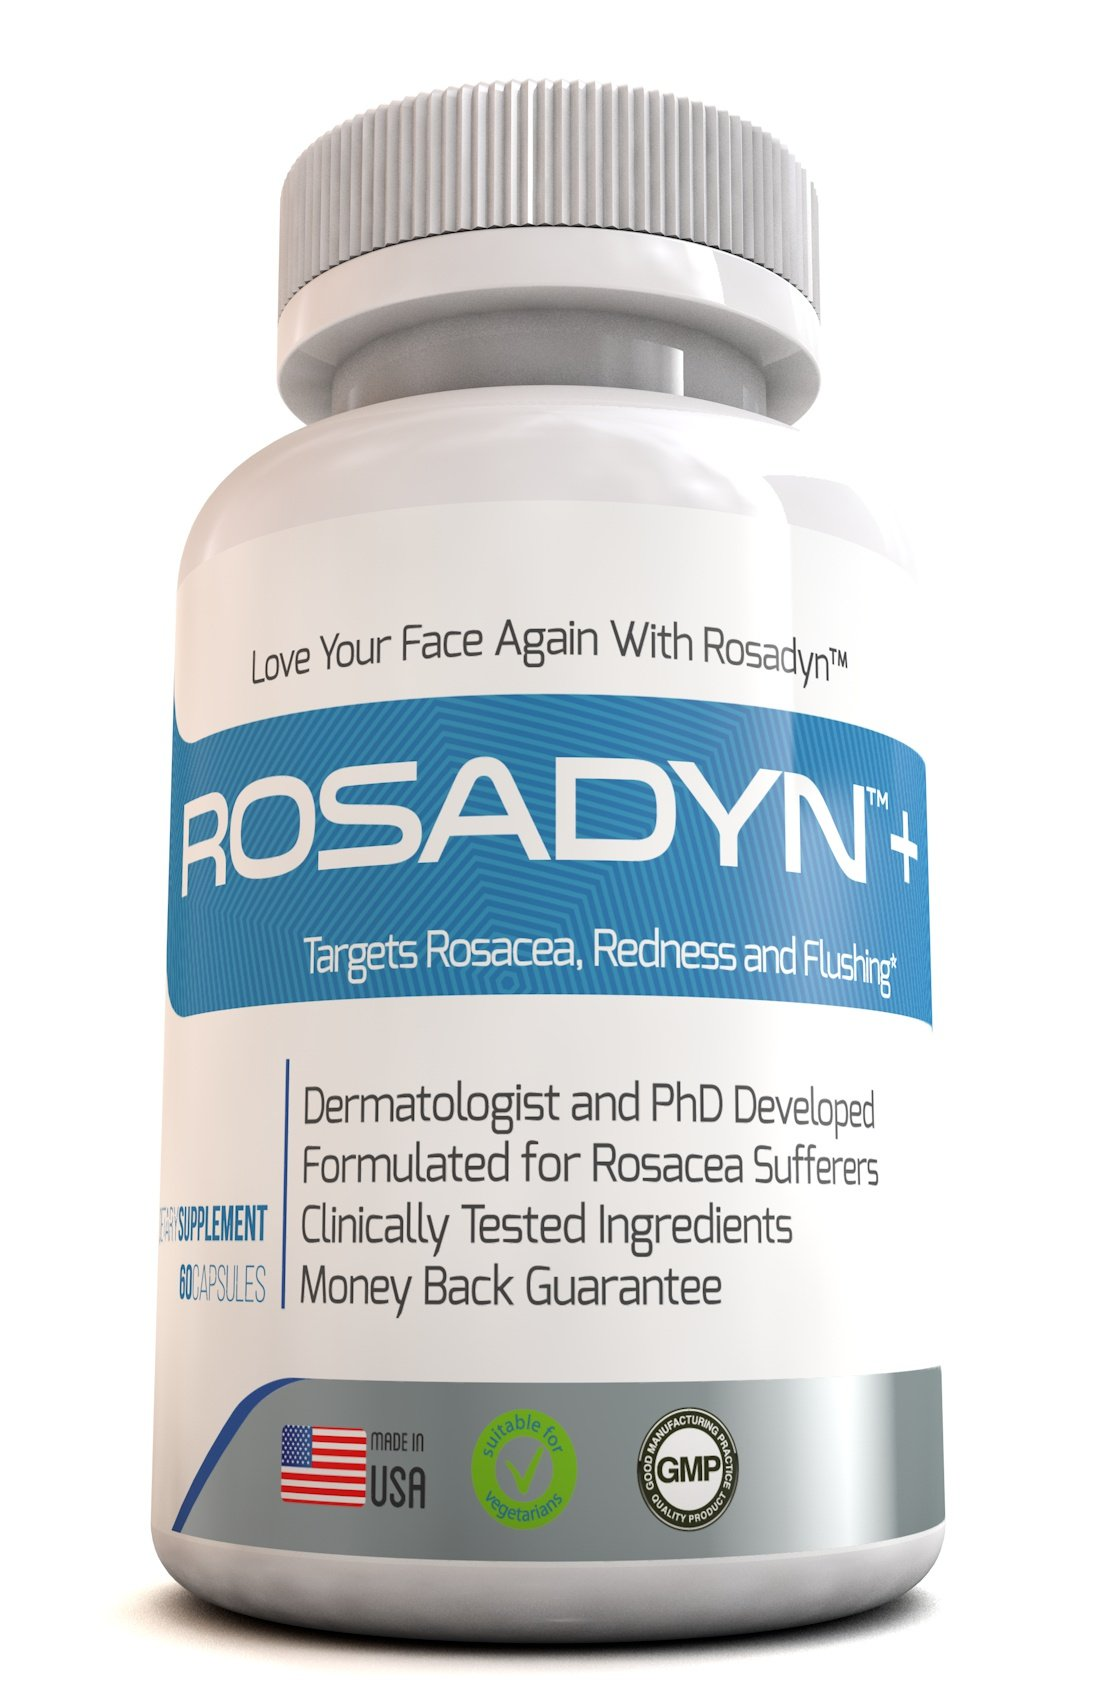 Rosacea Treatment 6 Pack by Rosadyn | Relief for Face & Nose Redness, Acne and Red Eyes | Works Internally Unlike a Cleanser Wash, Moisturizer, Cream or Other Skin Care Products | Natural | 360 Caps by Rosadyn+